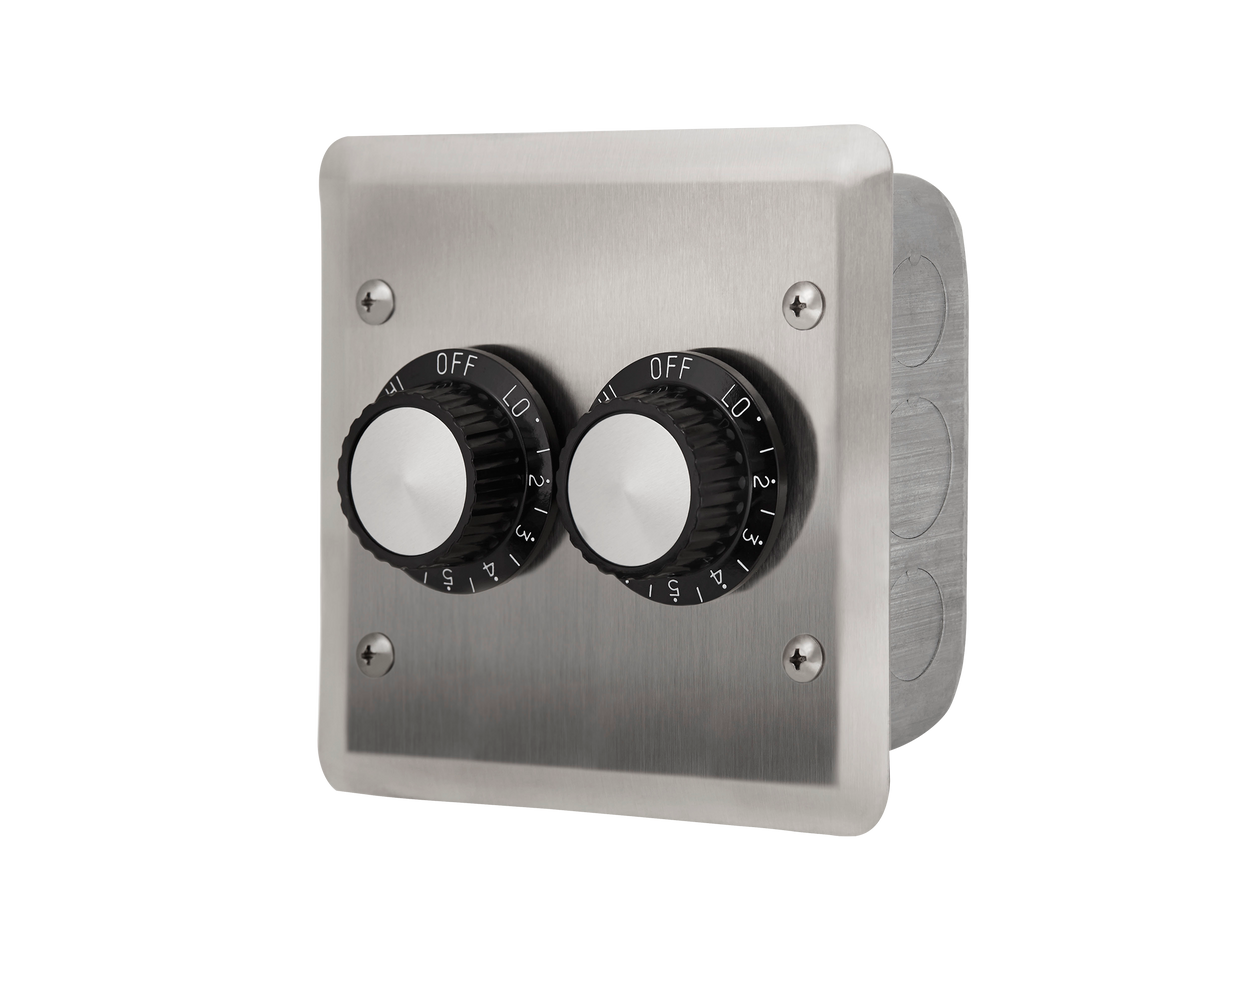 INFRATECH DUAL REGULATOR W/ STAINLESS STEEL WALL PLATE | Outdoor Heating NZ | Infratech NZ | | Outdoor Concepts